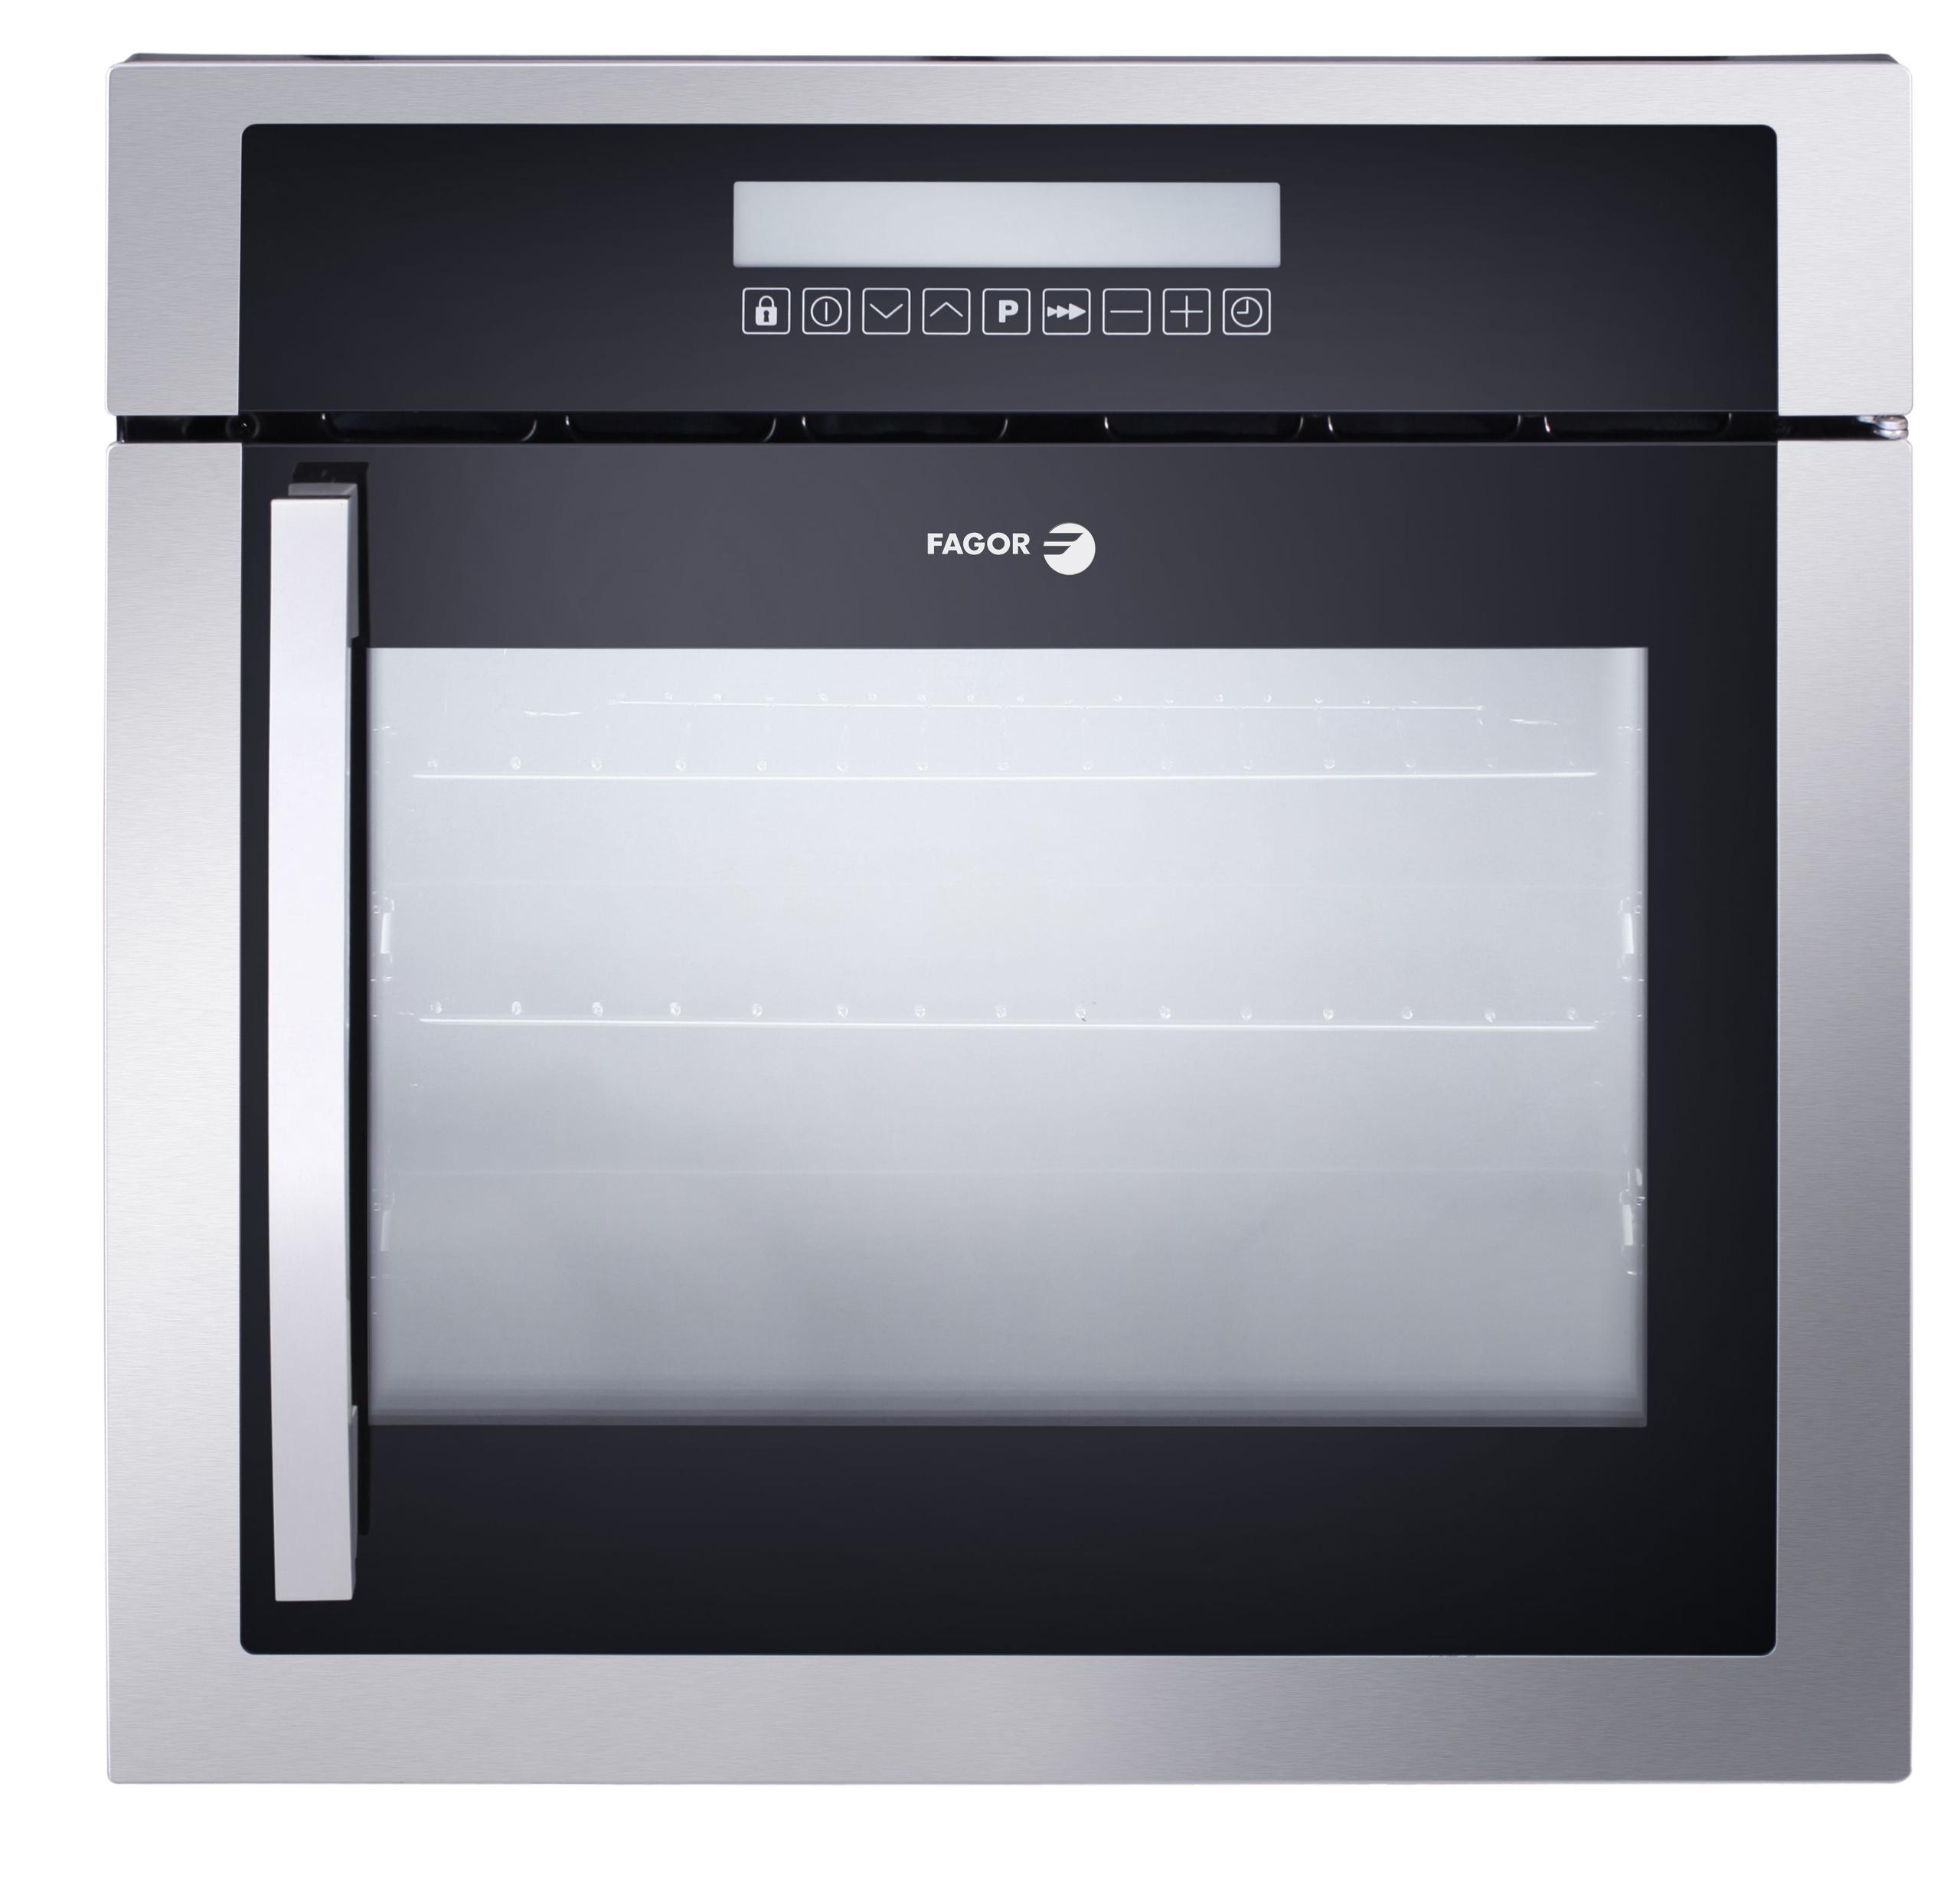 FagorRight Side Opening Oven